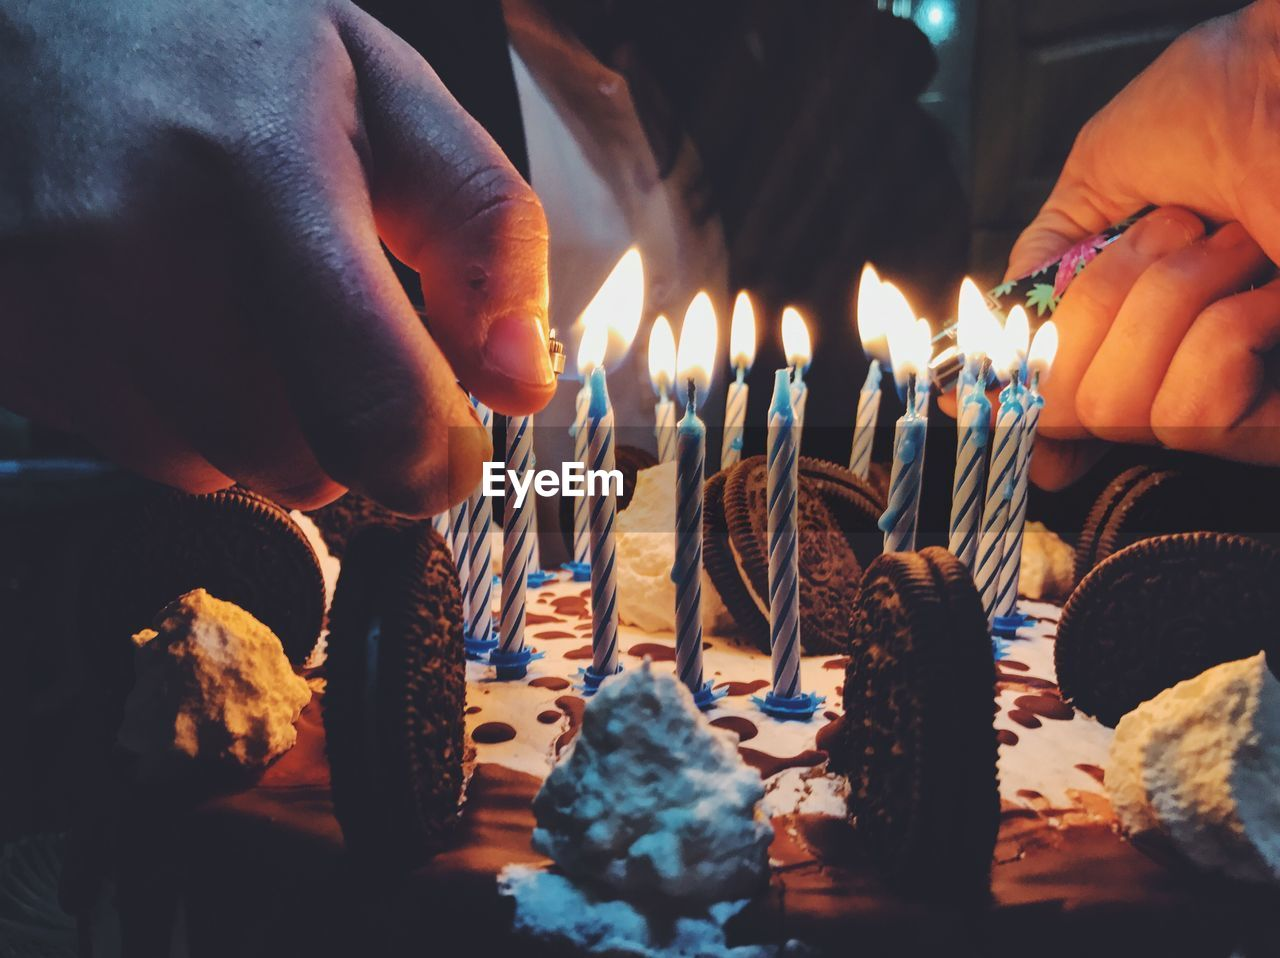 human hand, human body part, flame, burning, candle, human finger, celebration, birthday cake, birthday candles, indoors, one person, real people, holding, unrecognizable person, sweet food, heat - temperature, birthday, cake, lifestyles, leisure activity, temptation, dessert, life events, food, men, close-up, night, people, adult